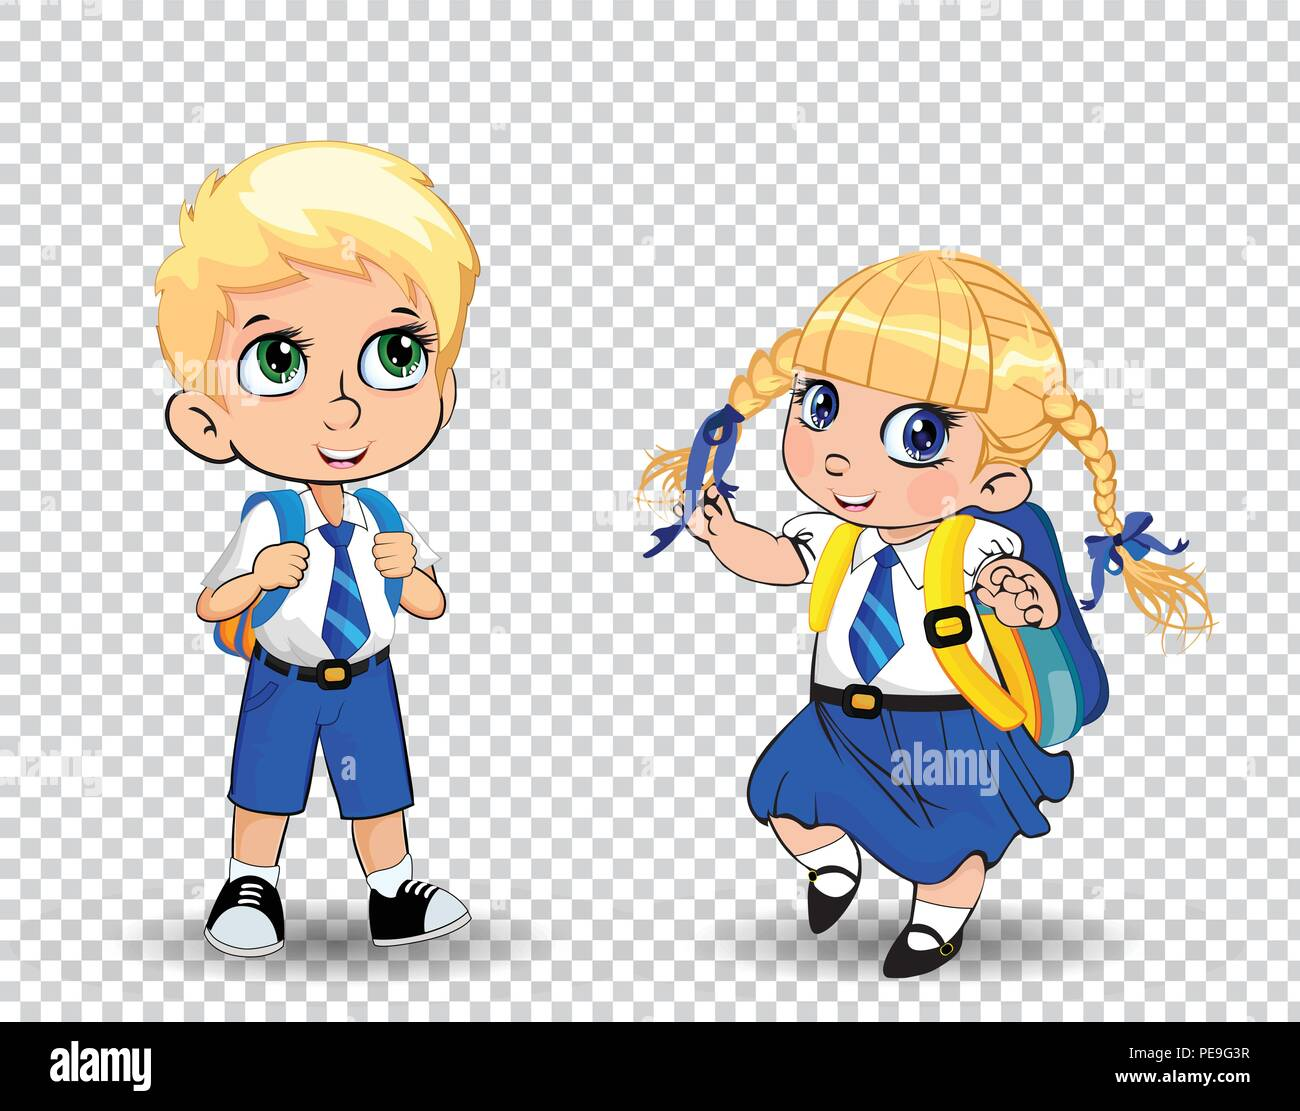 Cute little school girl and boy wearing uniform with backpack on  transparent background. Vector illustration fcf6287e6eb17